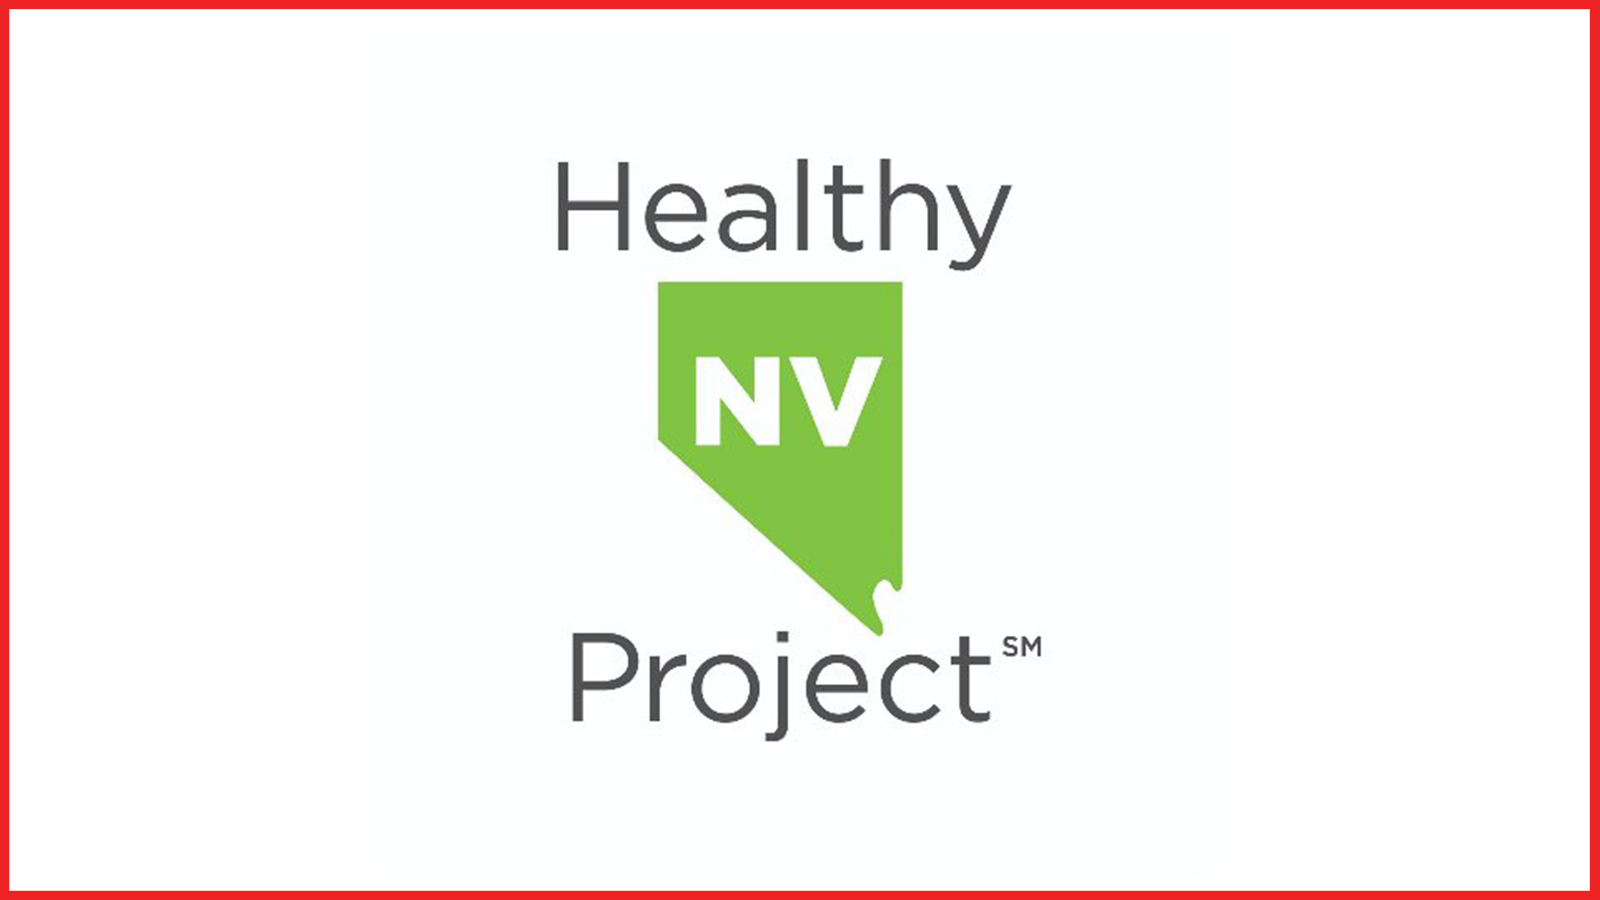 healthy nevada project logo in red border